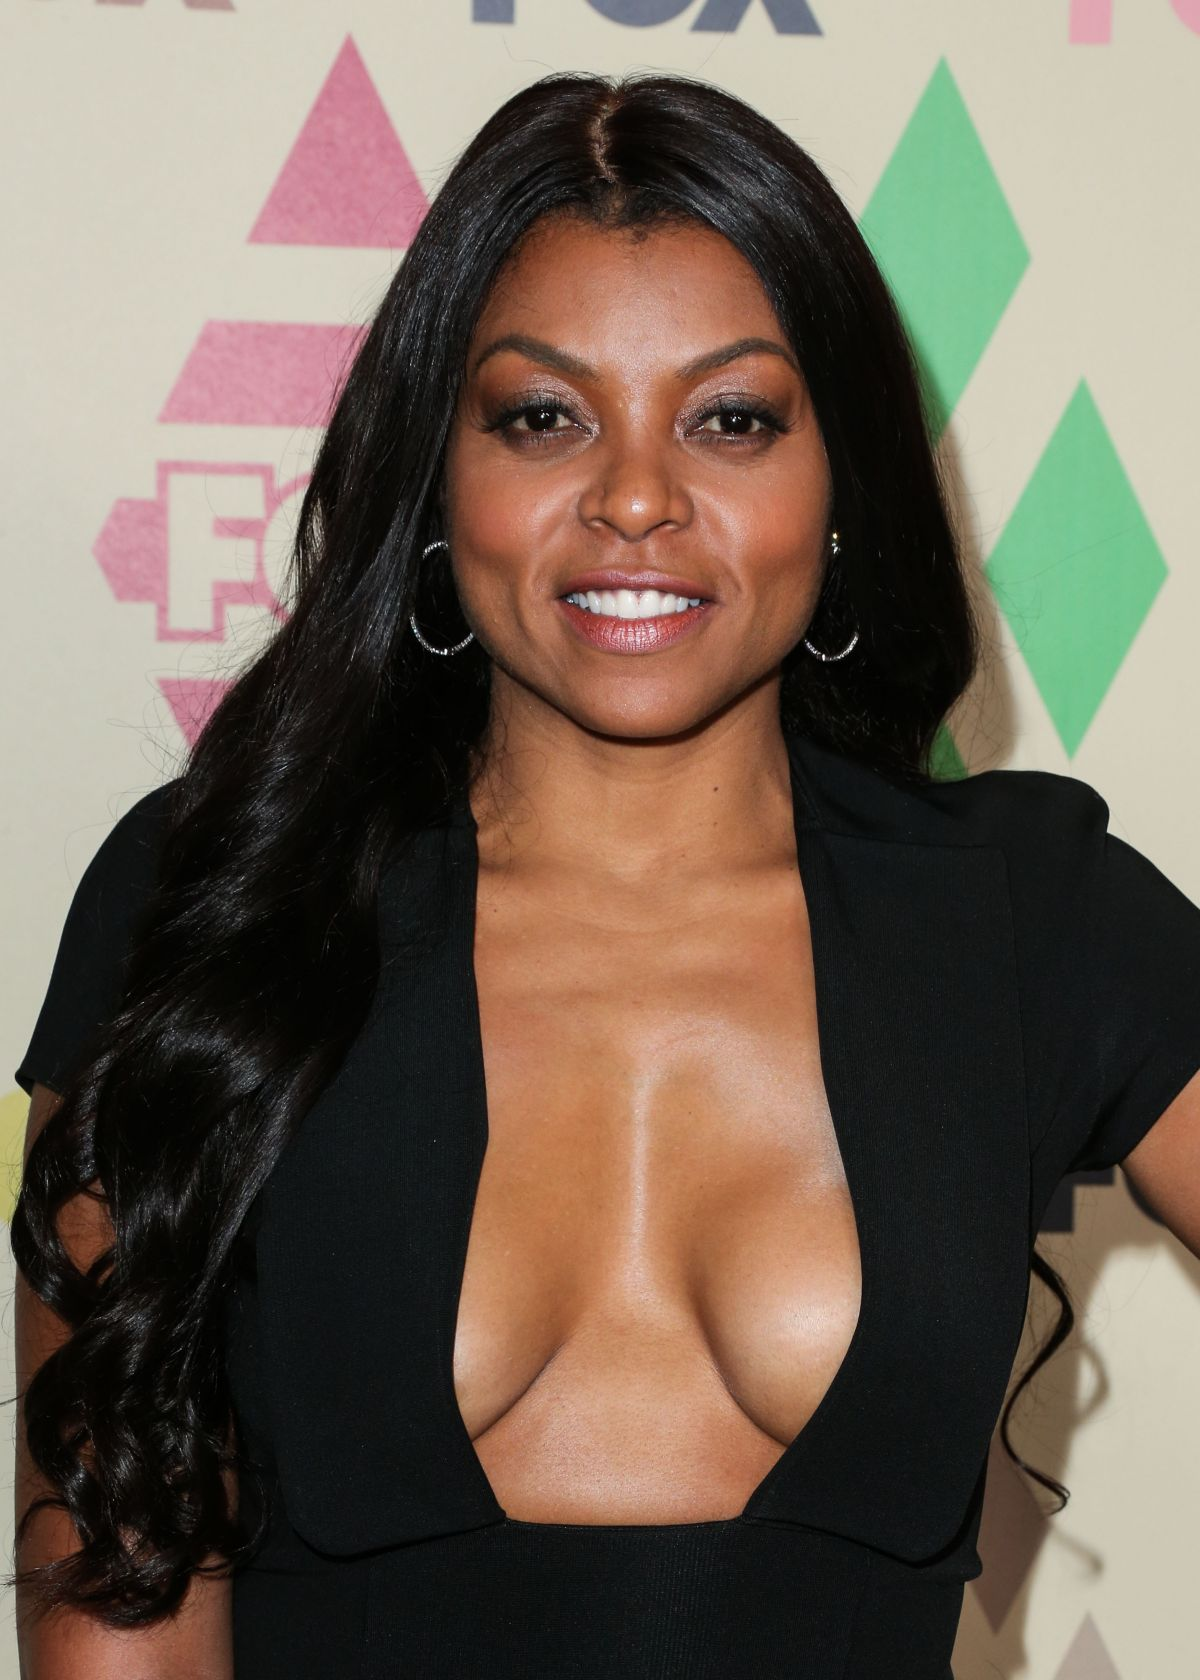 Braless pics of Taraji P. Henson